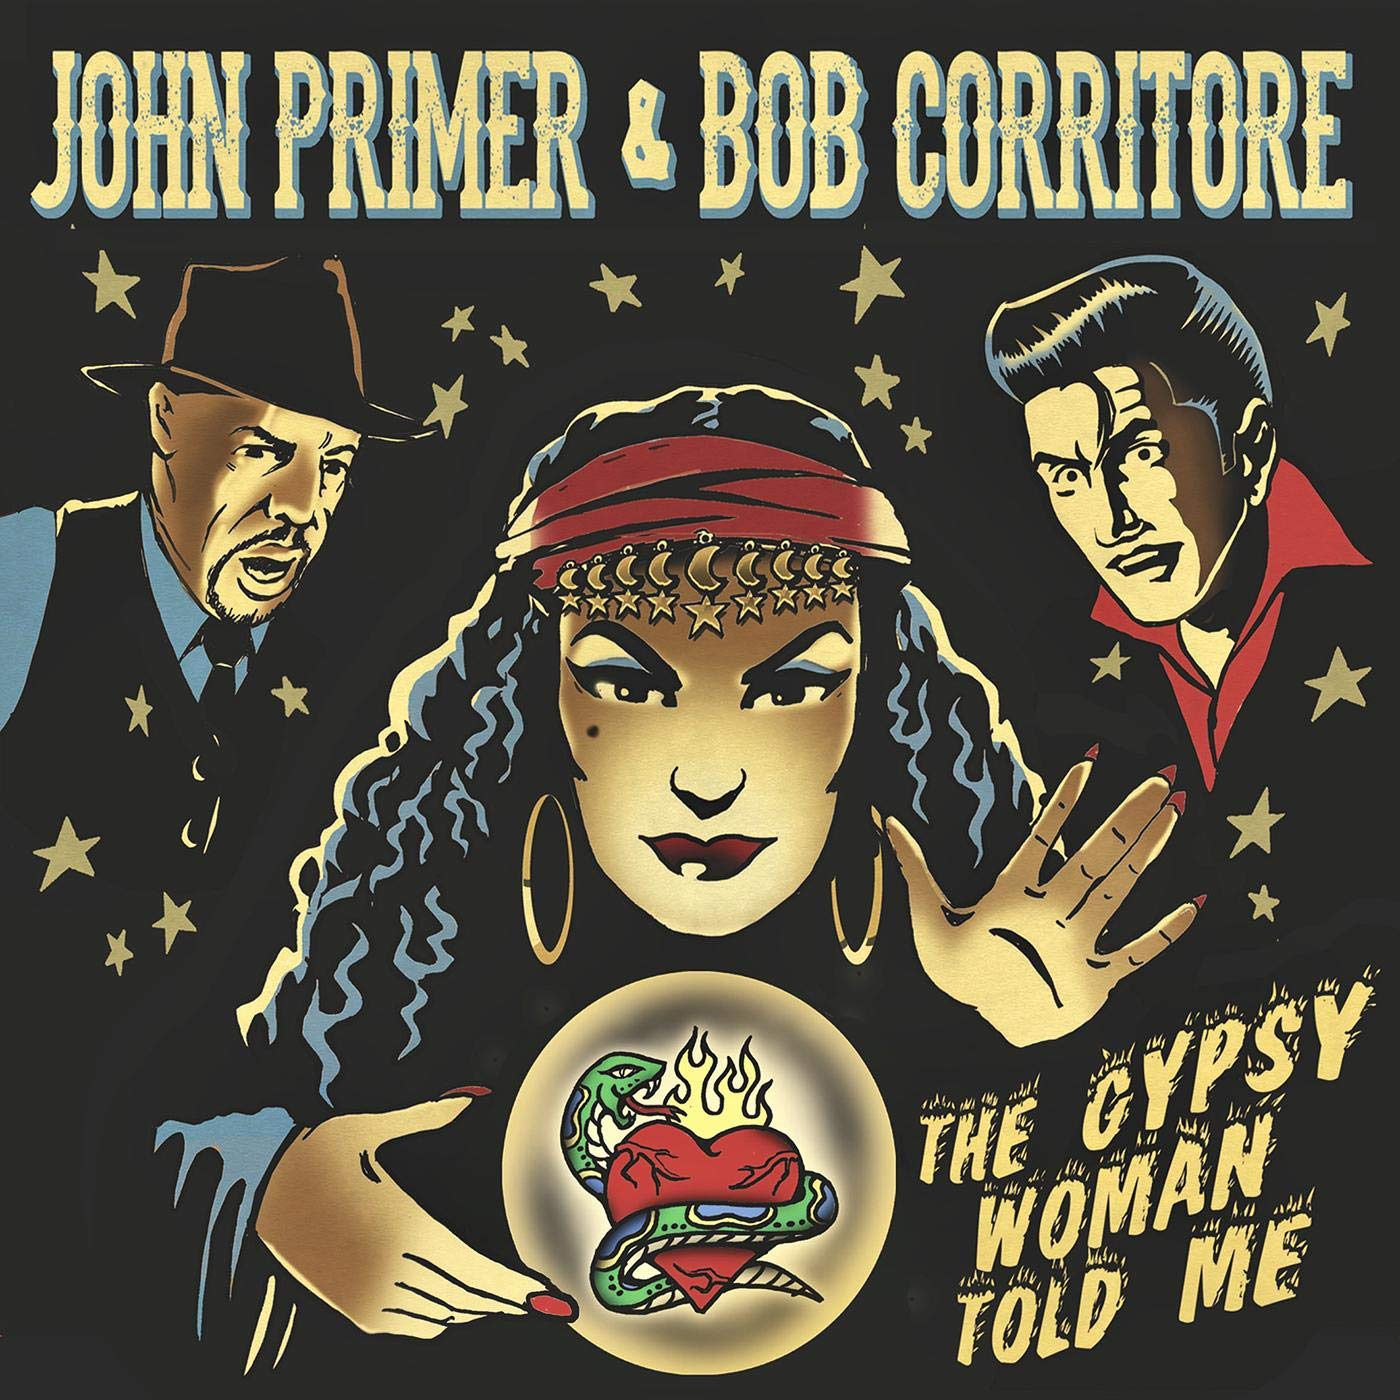 John Primer And Bob Corritore - The Gypsy Woman Told Me